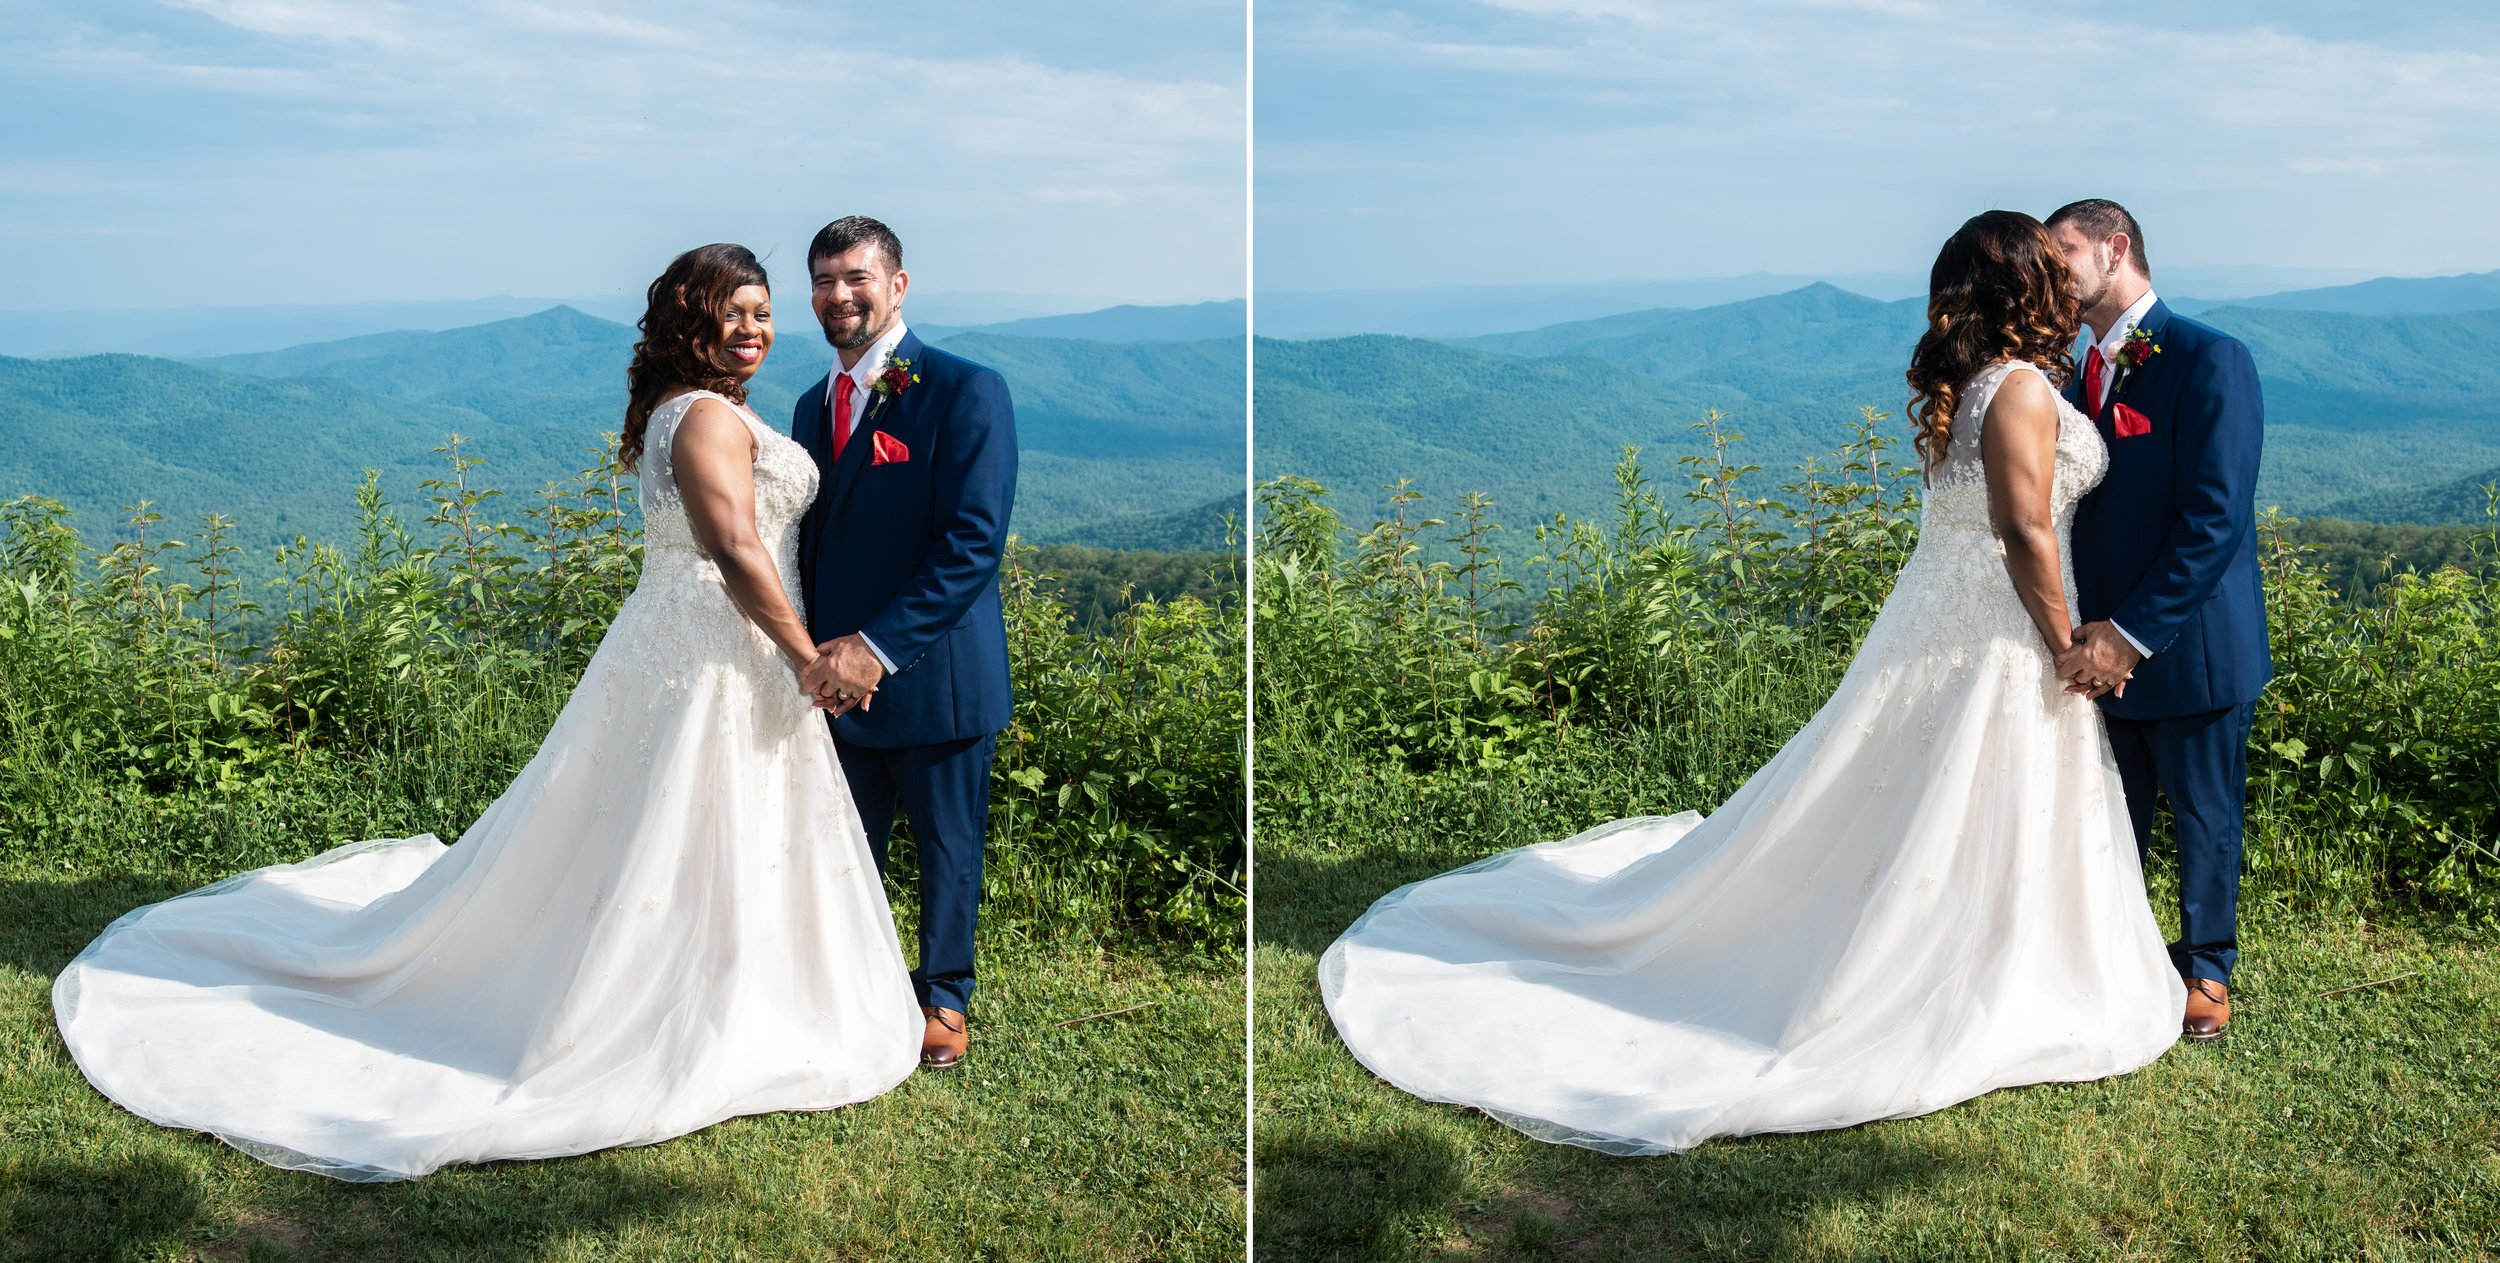 Bridal Portraits in Asheville, NC